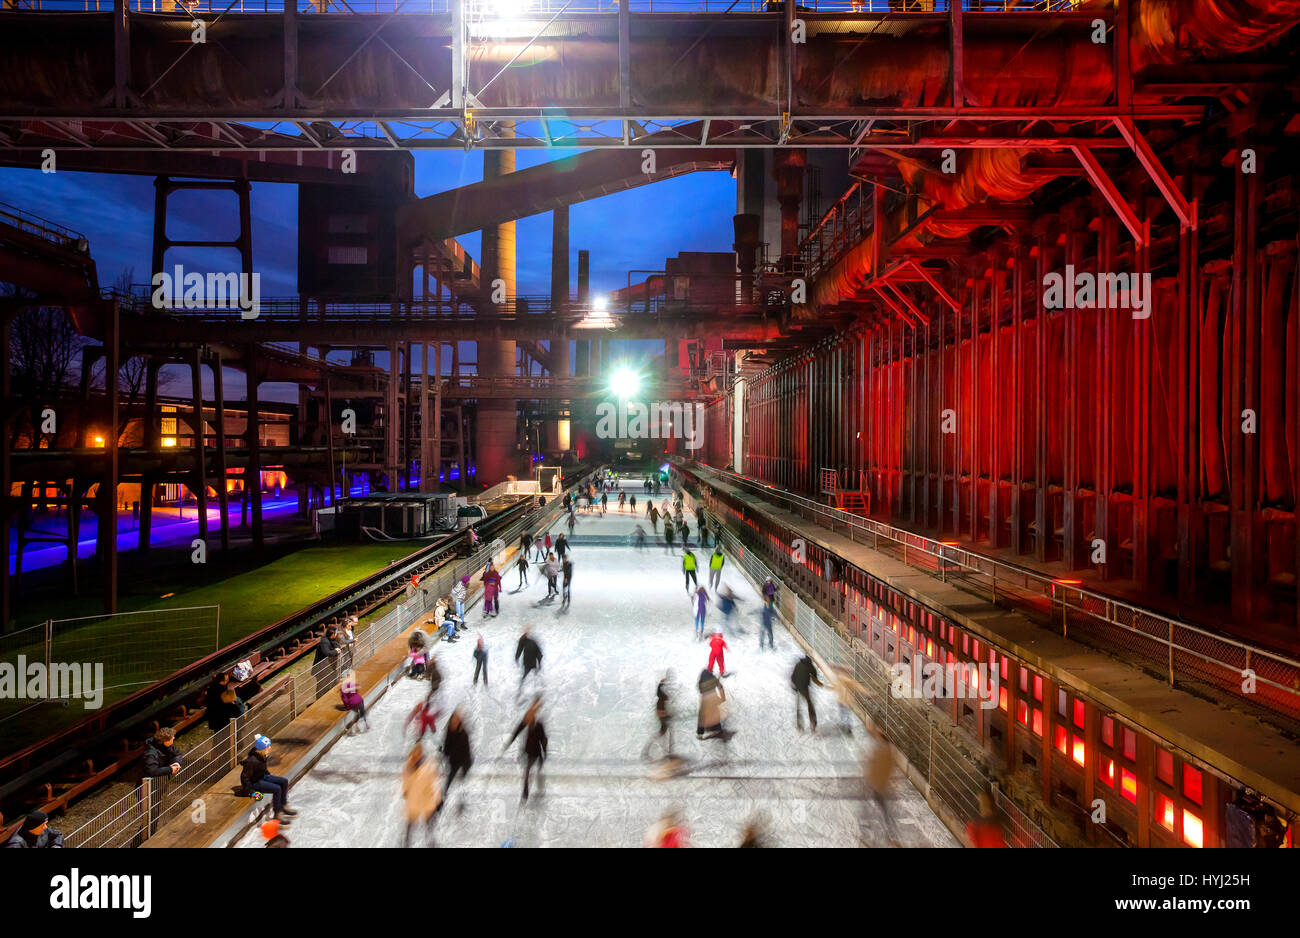 Ice rink, ice track Zeche Zollverein, Essen, North Rhine-Westphalia, Germany - Stock Image